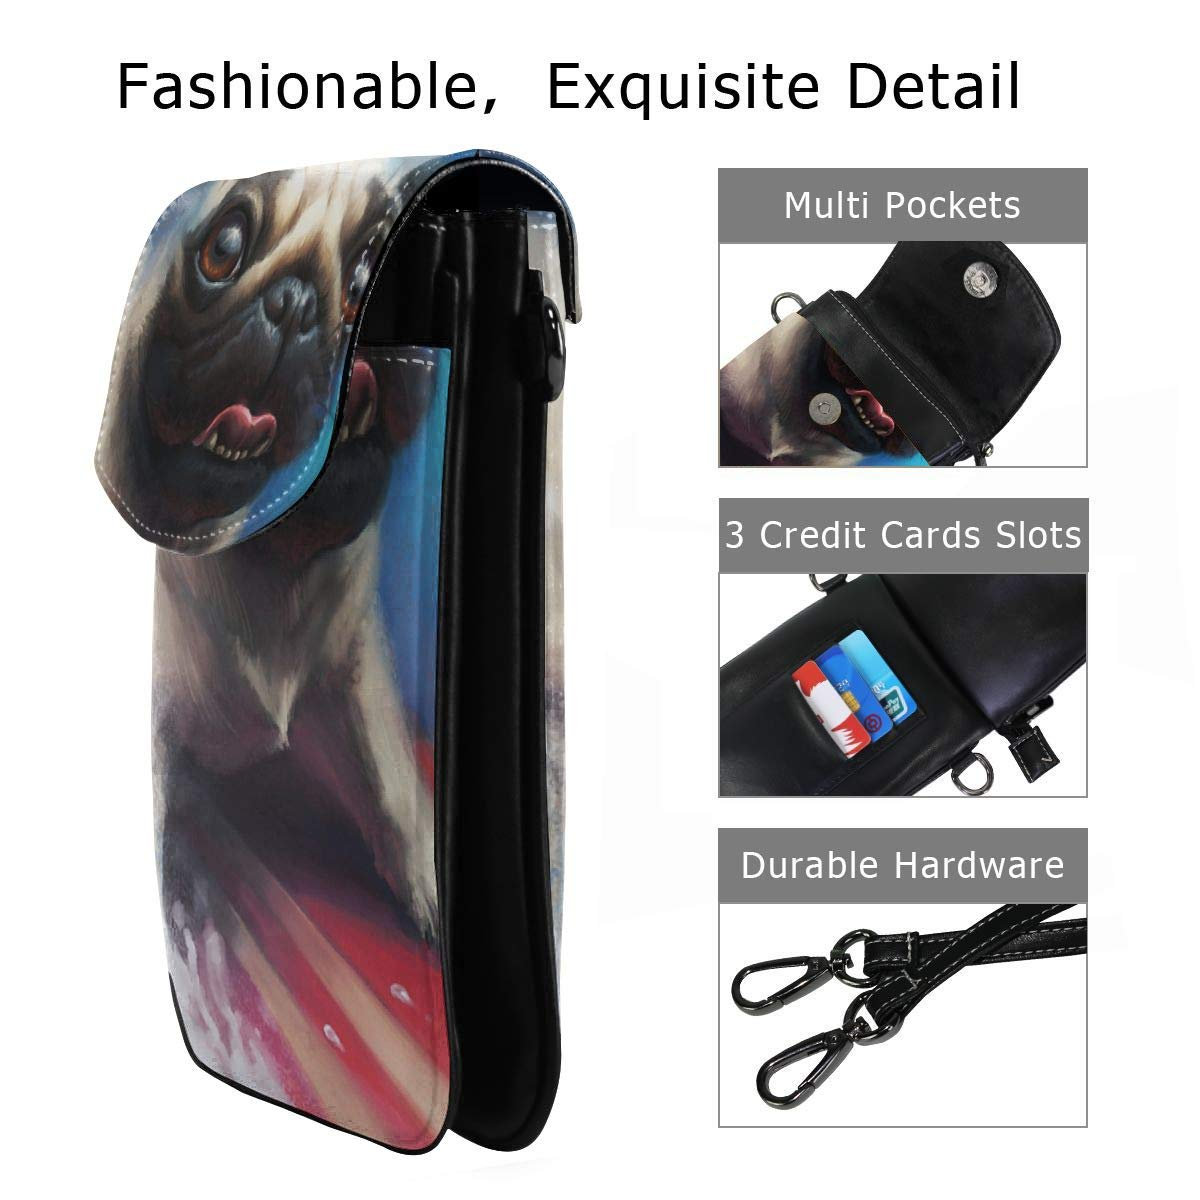 Hsanfwnzl Small Cell Phone Purse Pug Crossbody Bags with Shoulder Strap Coin Purse Wallet for Women,Girls